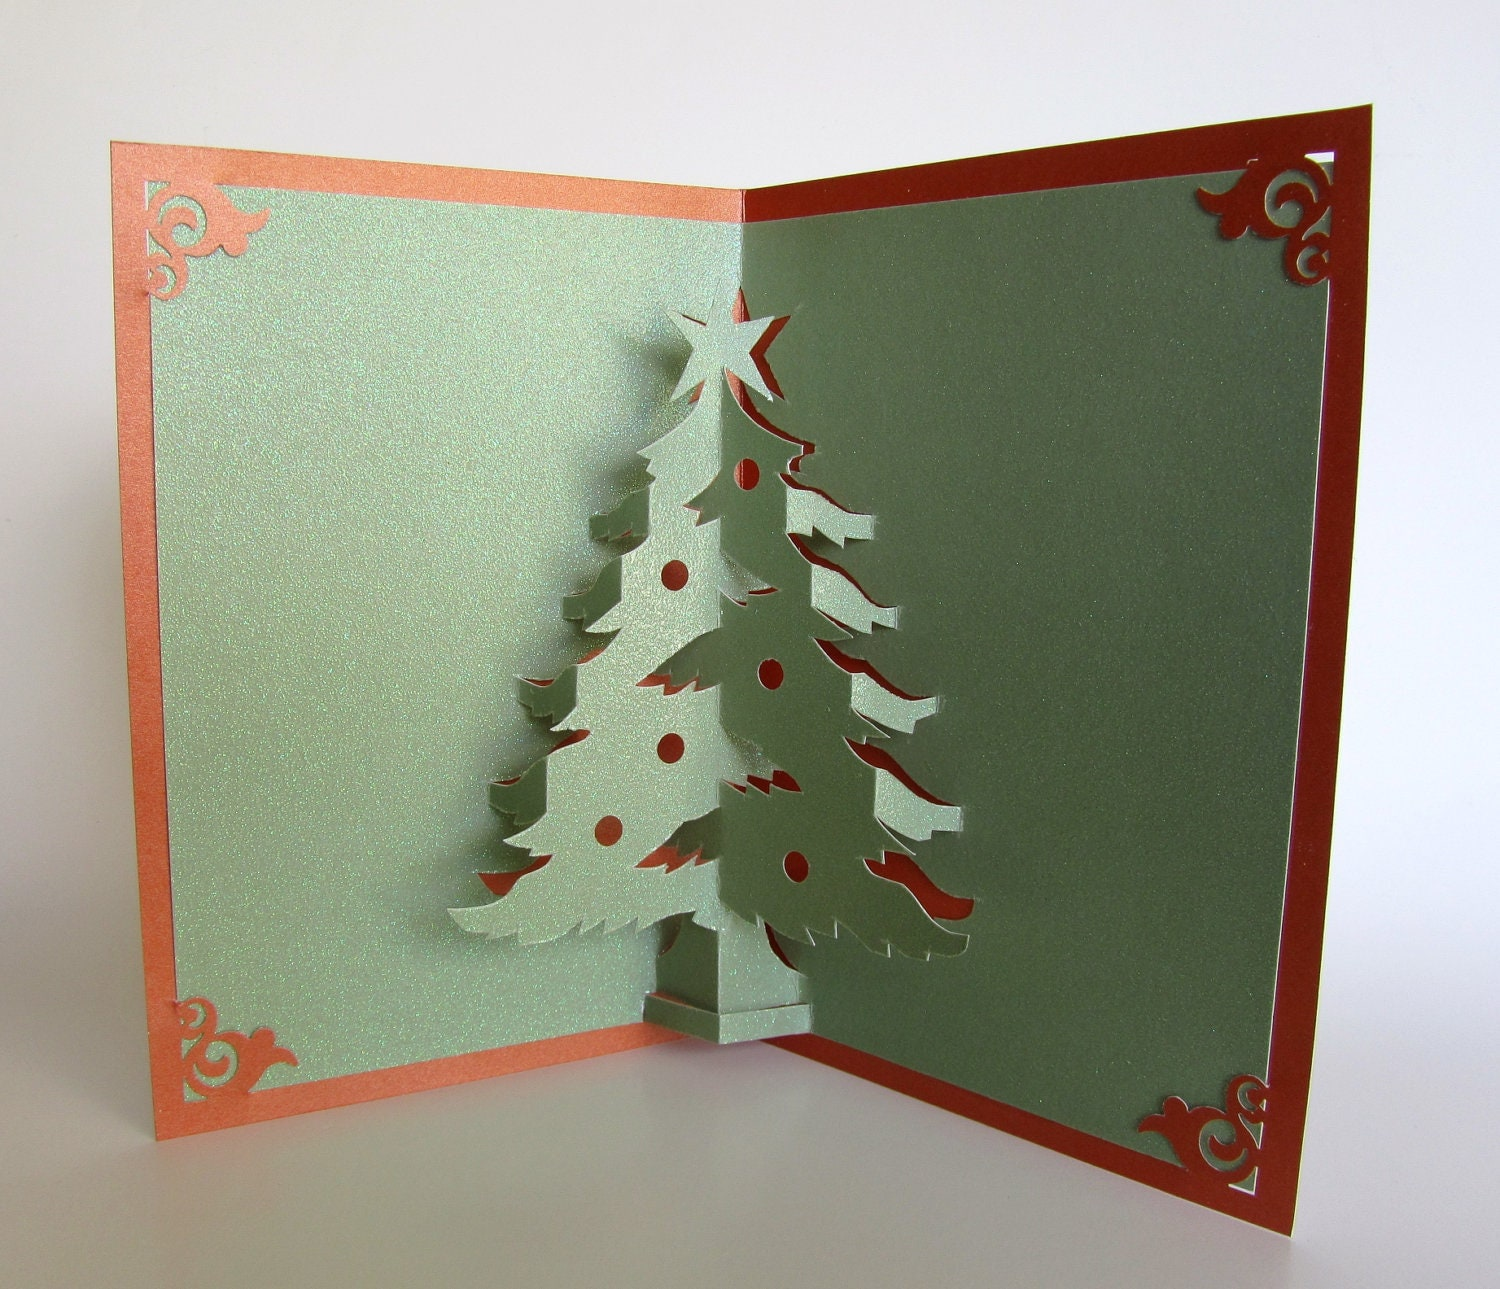 Christmas tree pop up up greeting card home d cor 3d handmade for 3d christmas cards to make at home